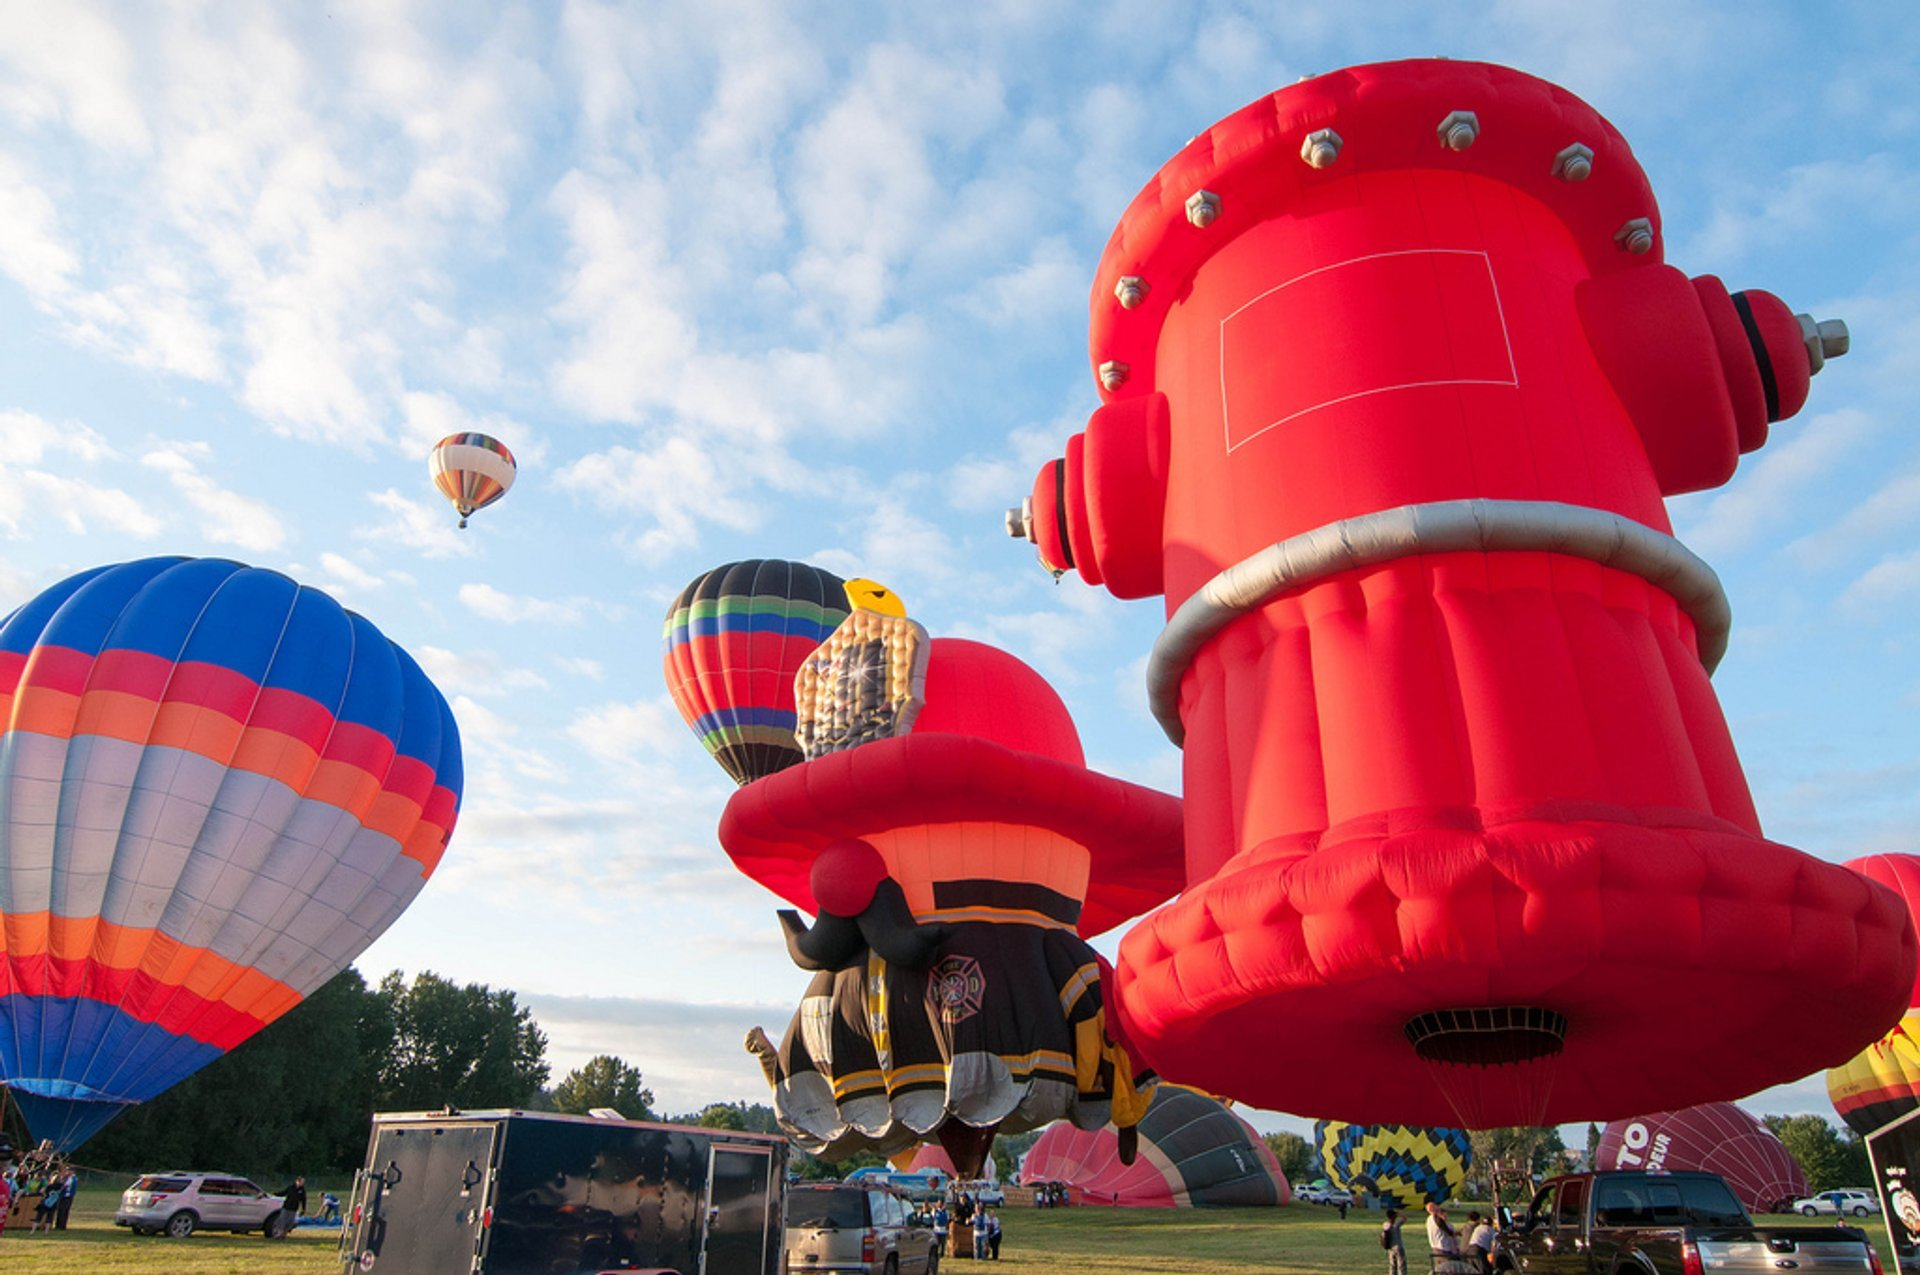 Gatineau Hot Air Balloon Festival in Ottawa - Best Season 2020